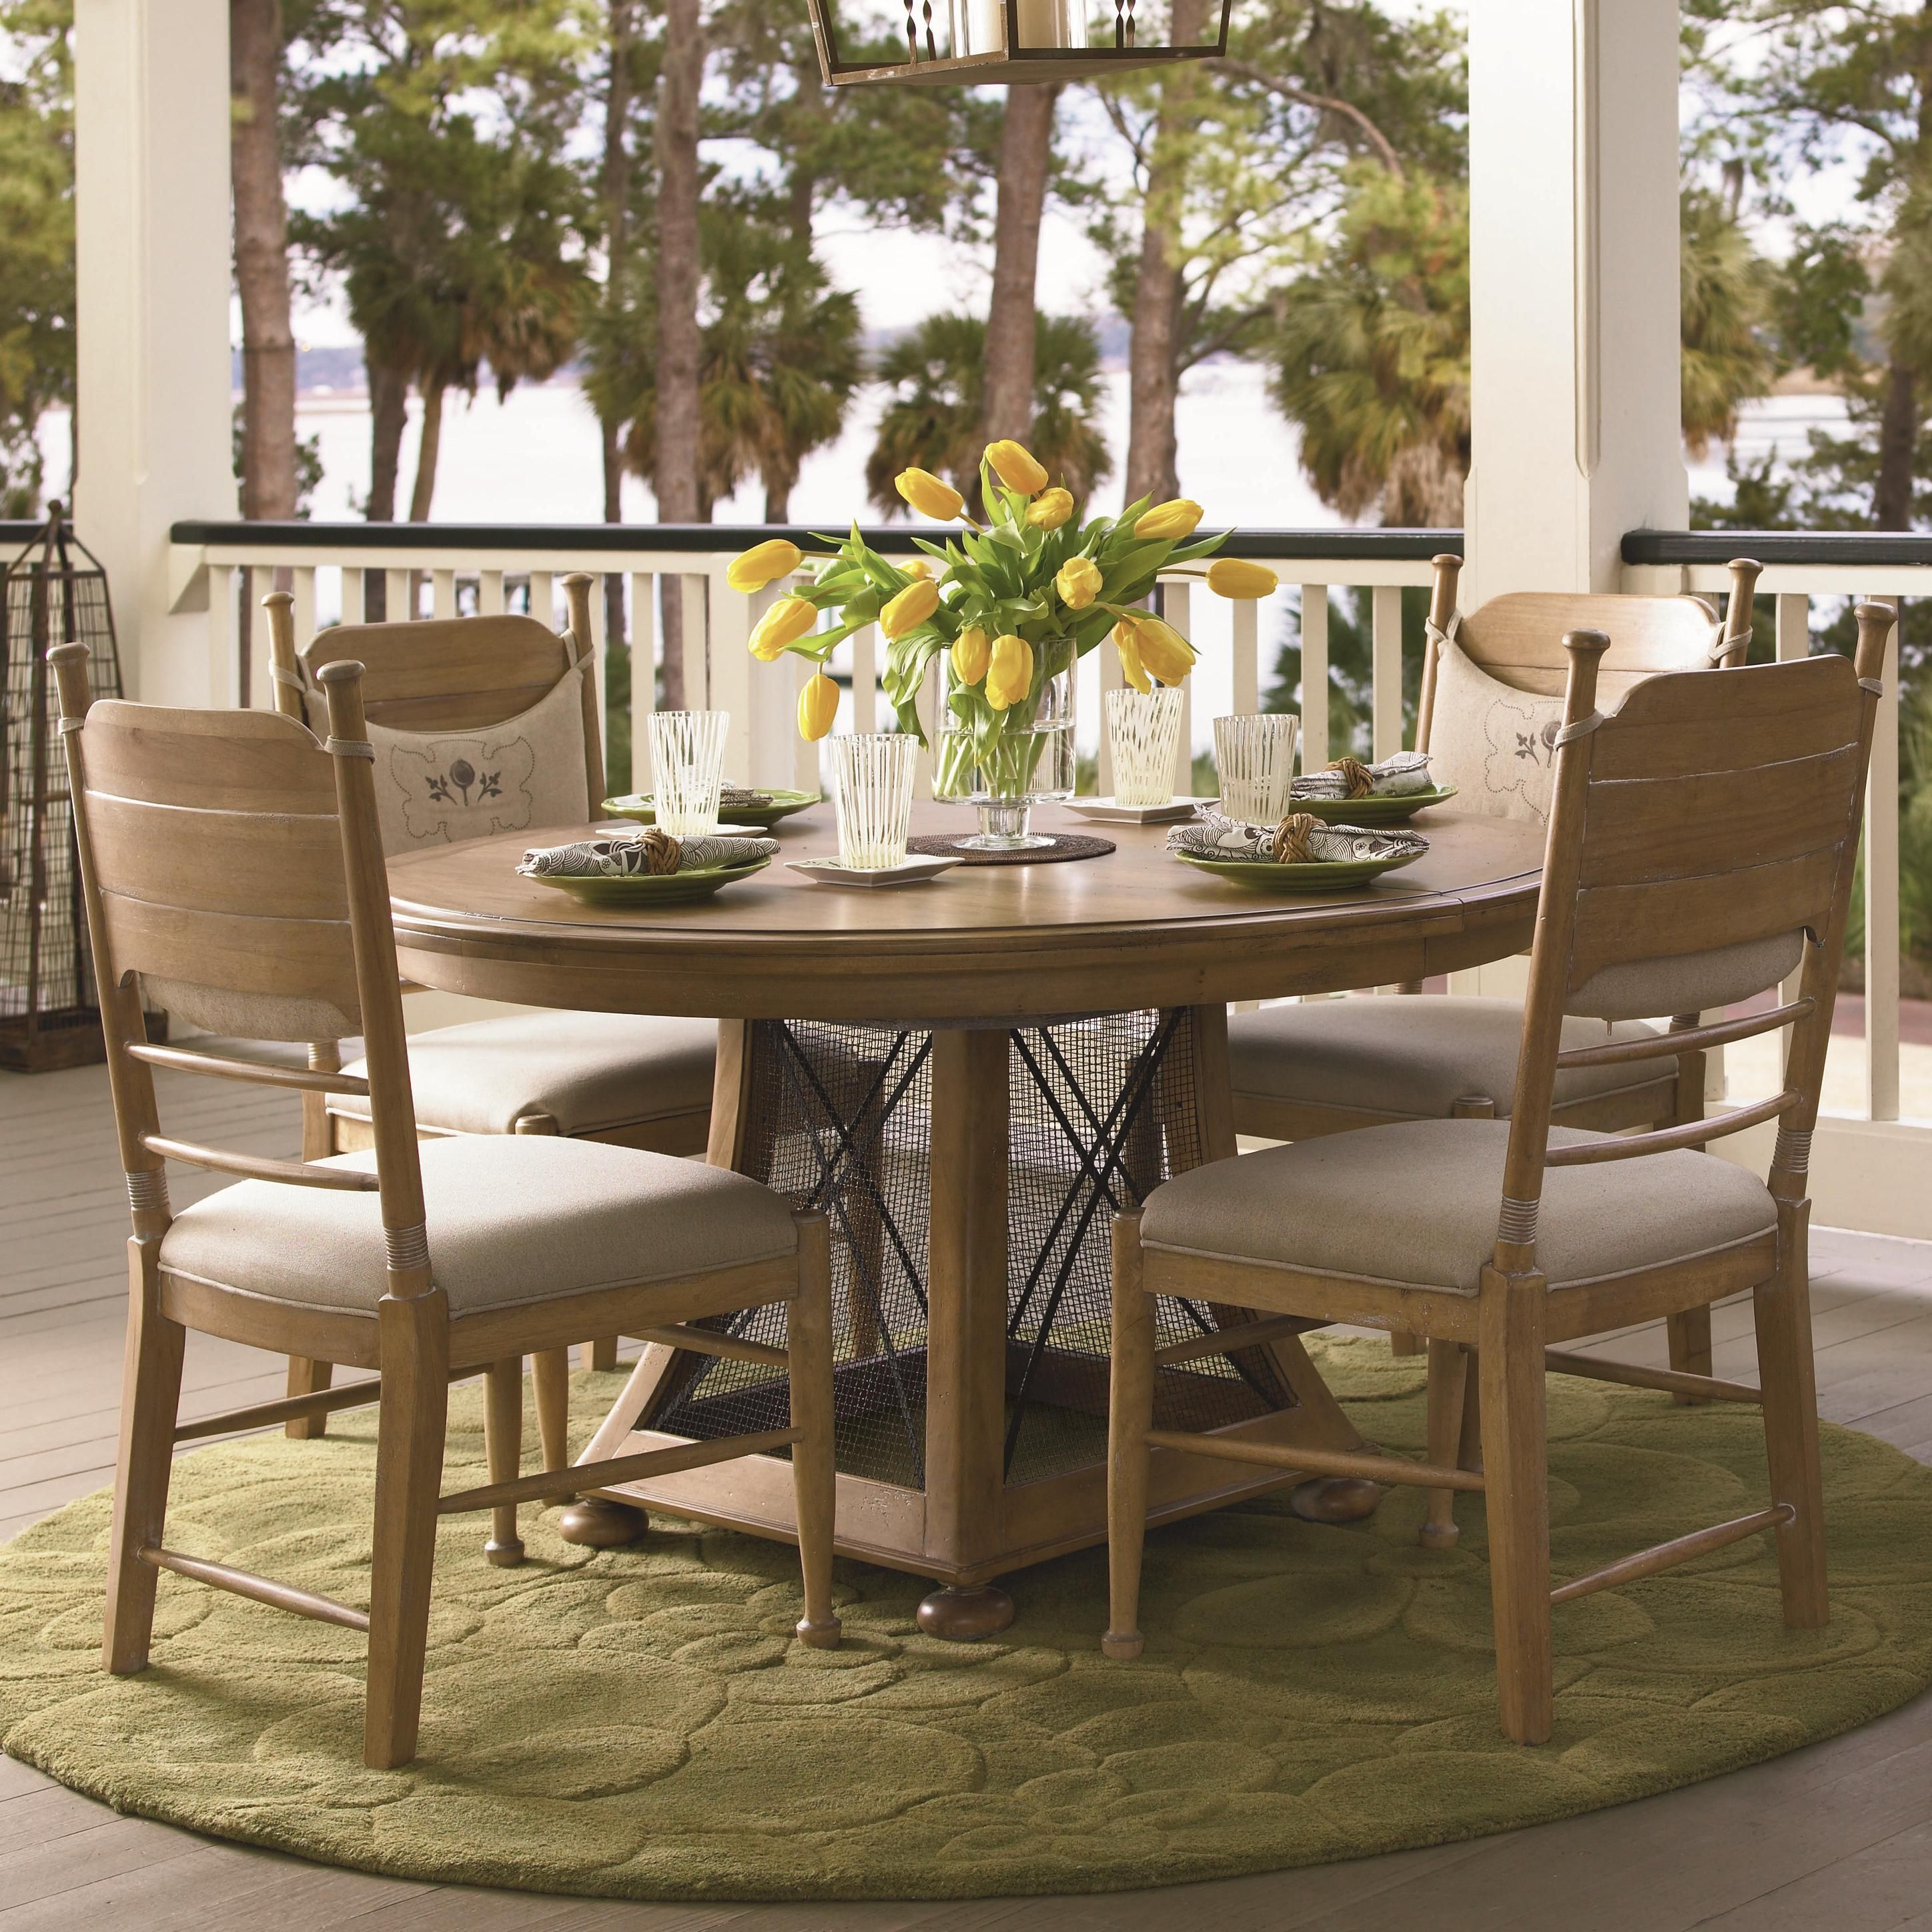 Paula Deen Down Home Round/Oval Pedestal Breakfast Dining Table   Oatmeal  Finish